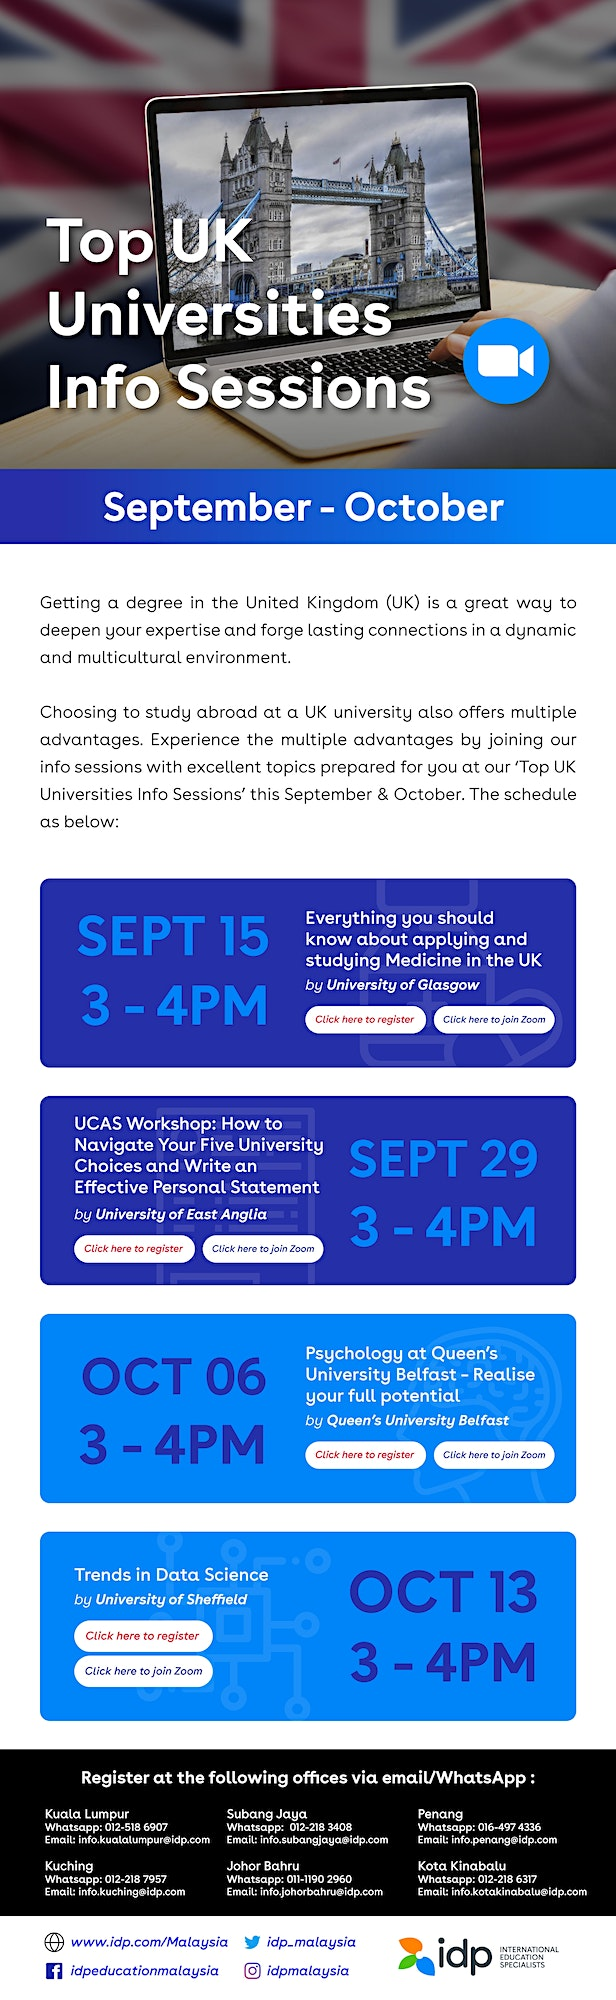 IDP Info Session with University of East Anglia : UCAS Workshop image